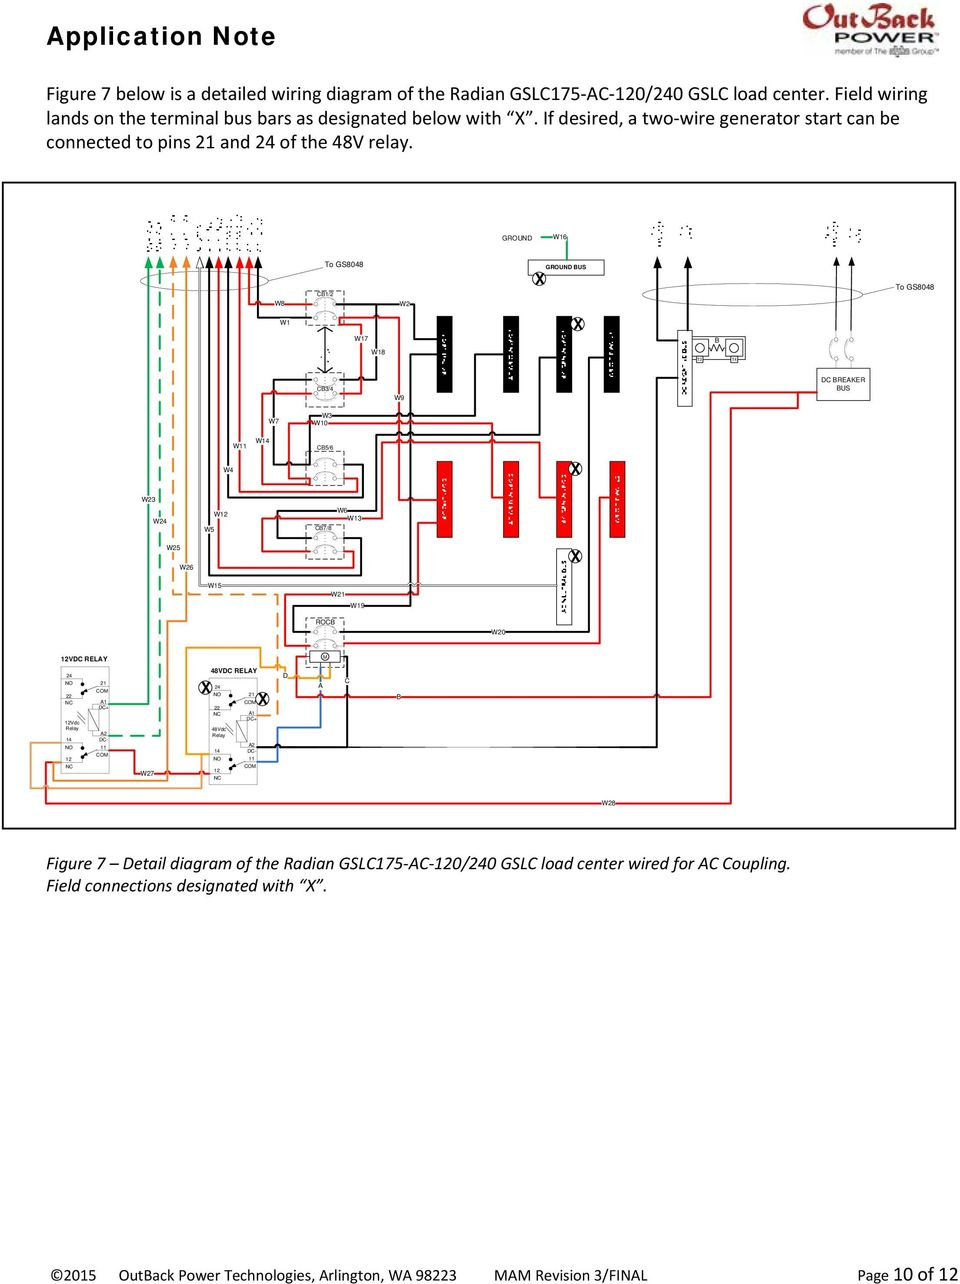 Wire Diagram Ac Coupling Electrical Wiring Diagrams Cscr Trusted Heat Grid Tie Inverters With